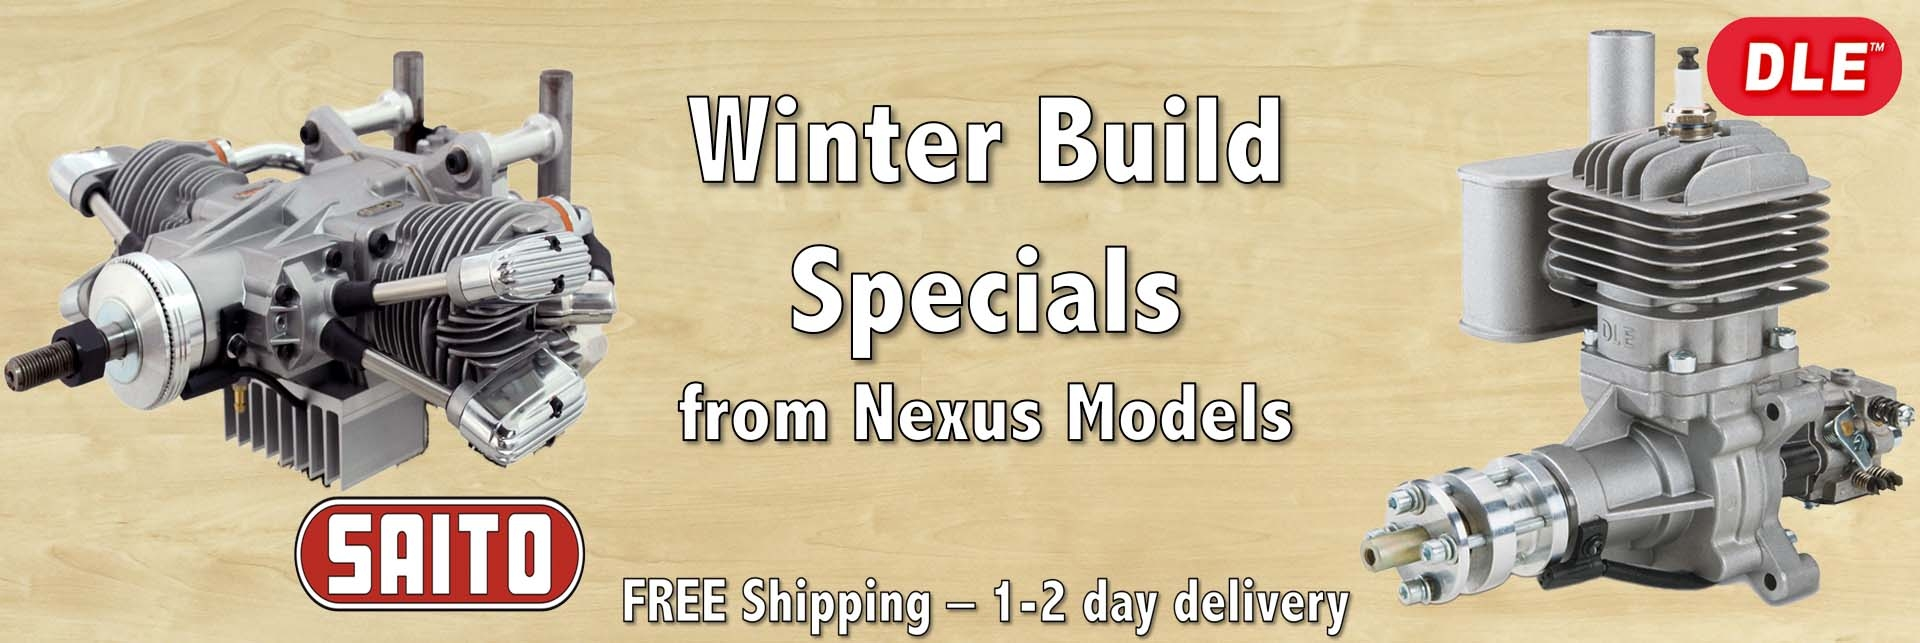 Winter Build Specials